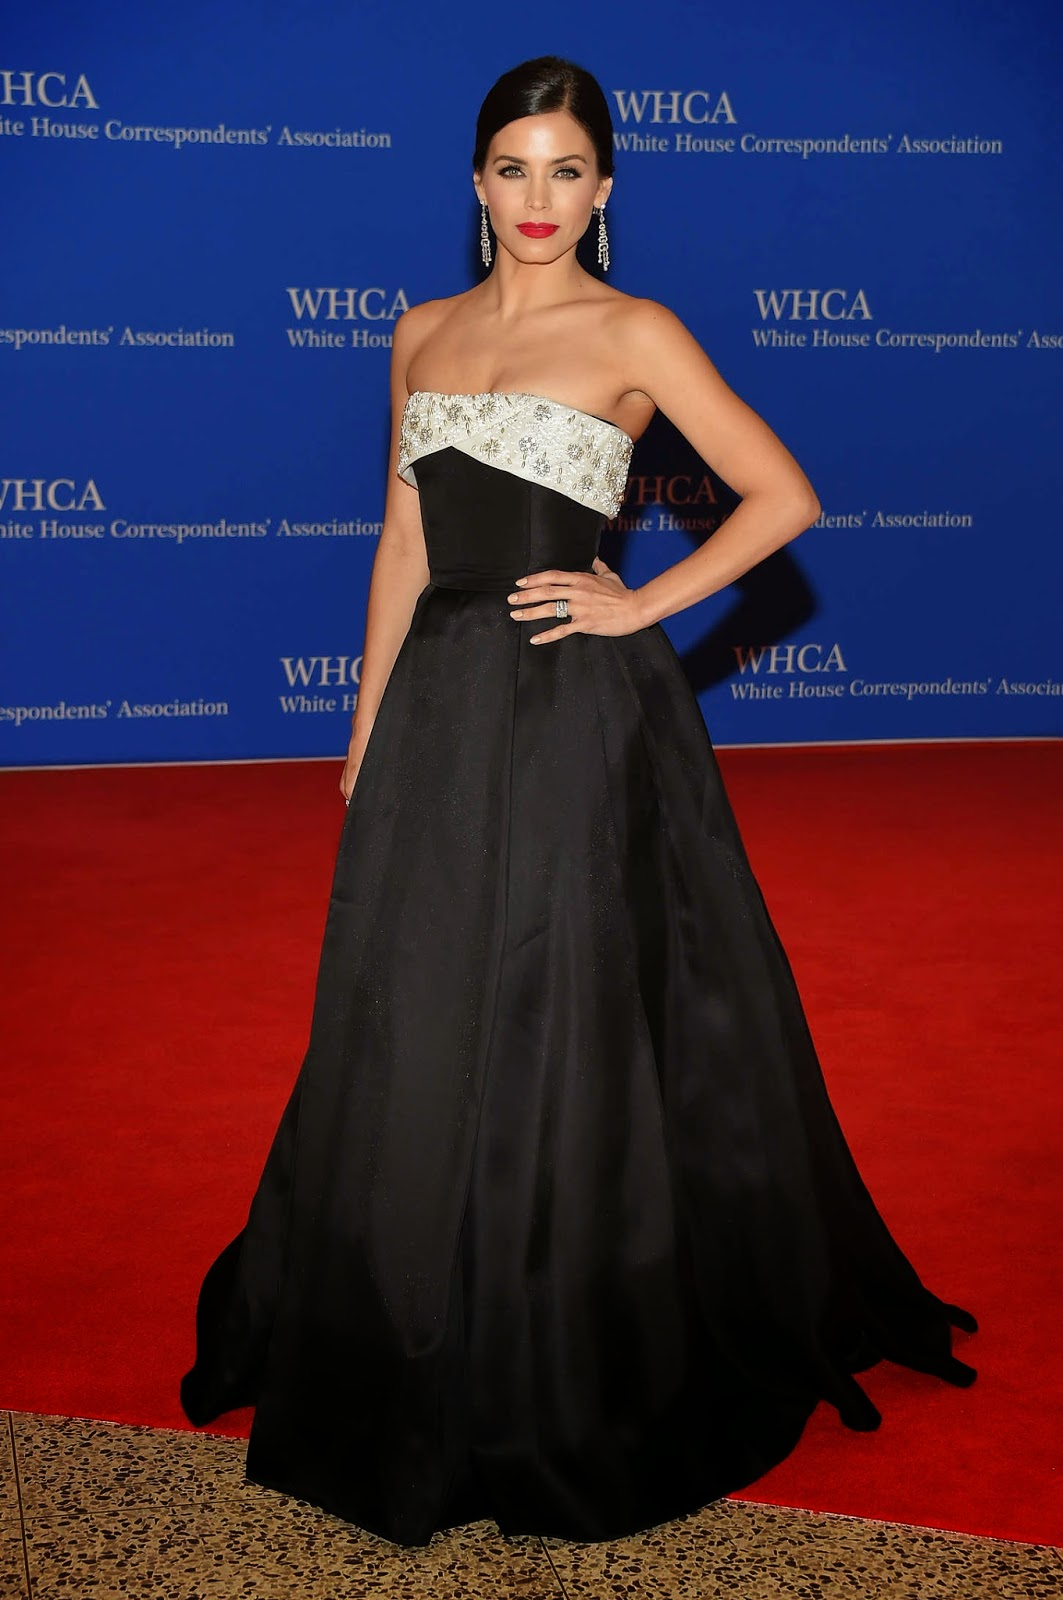 Jenna Dewan-Tatum is elegant in a strapless gown at the 2015 White House Correspondents' Association Dinner